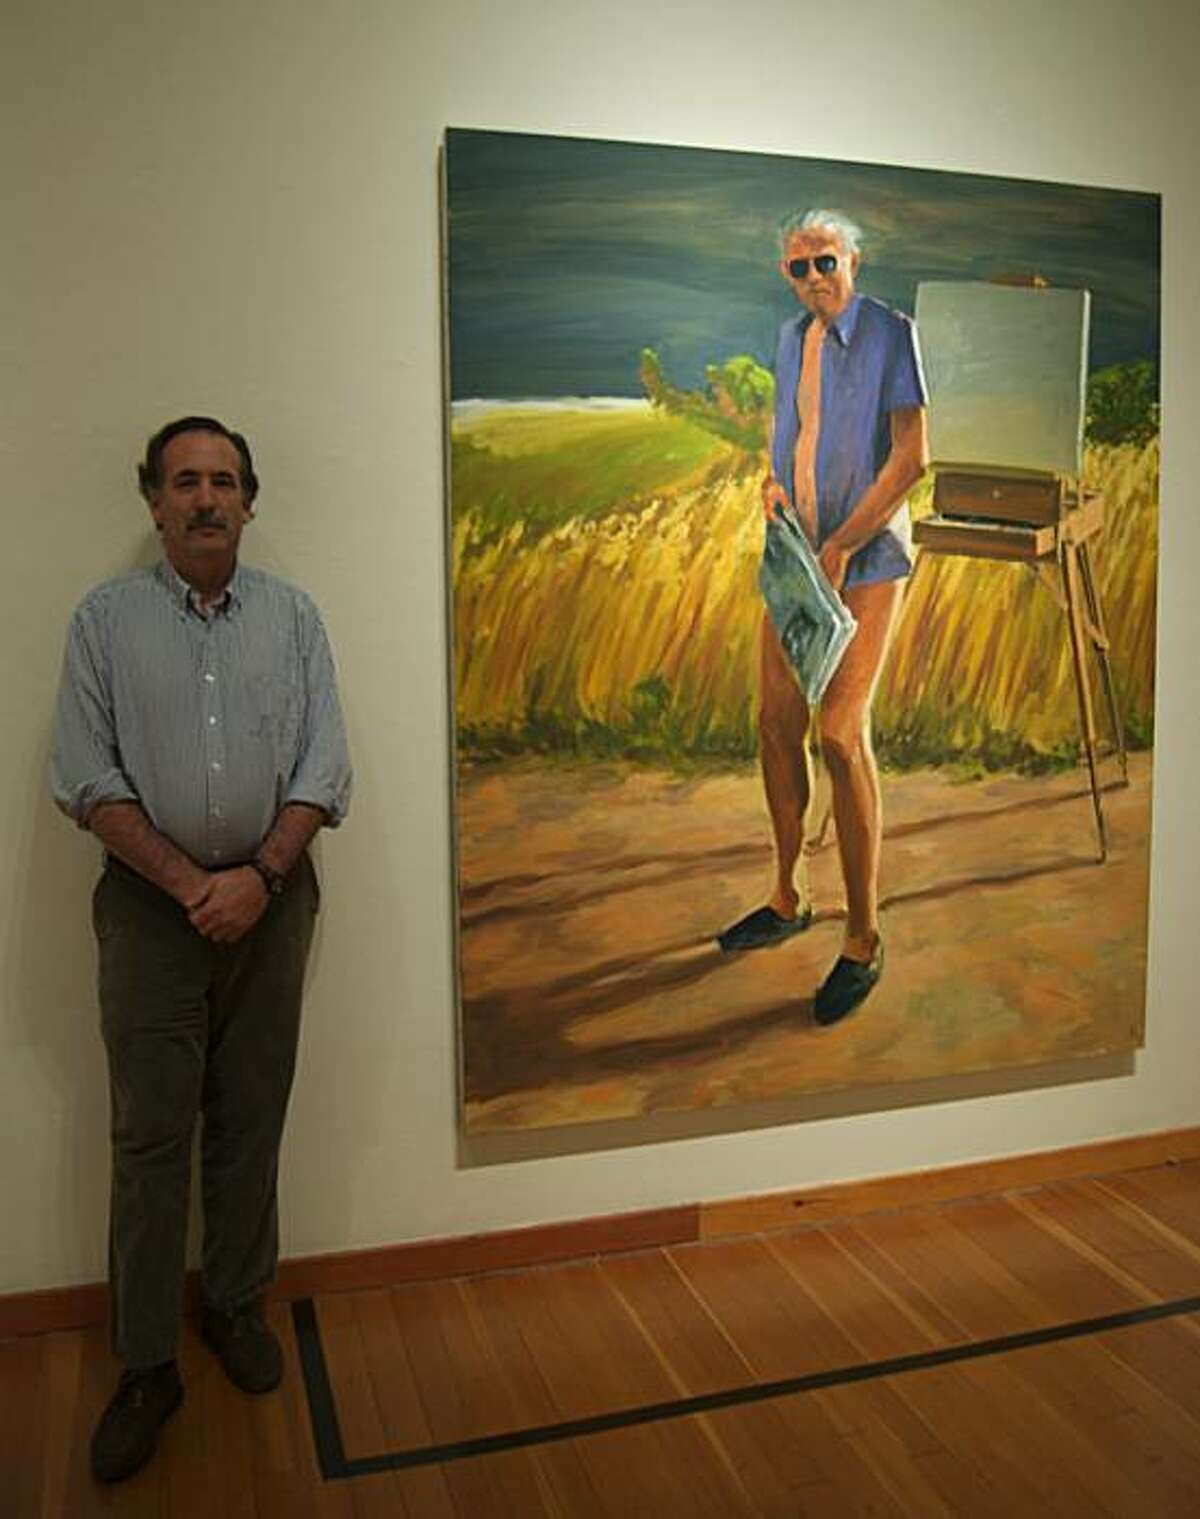 Michael schwager_with work by Eric _fischl: